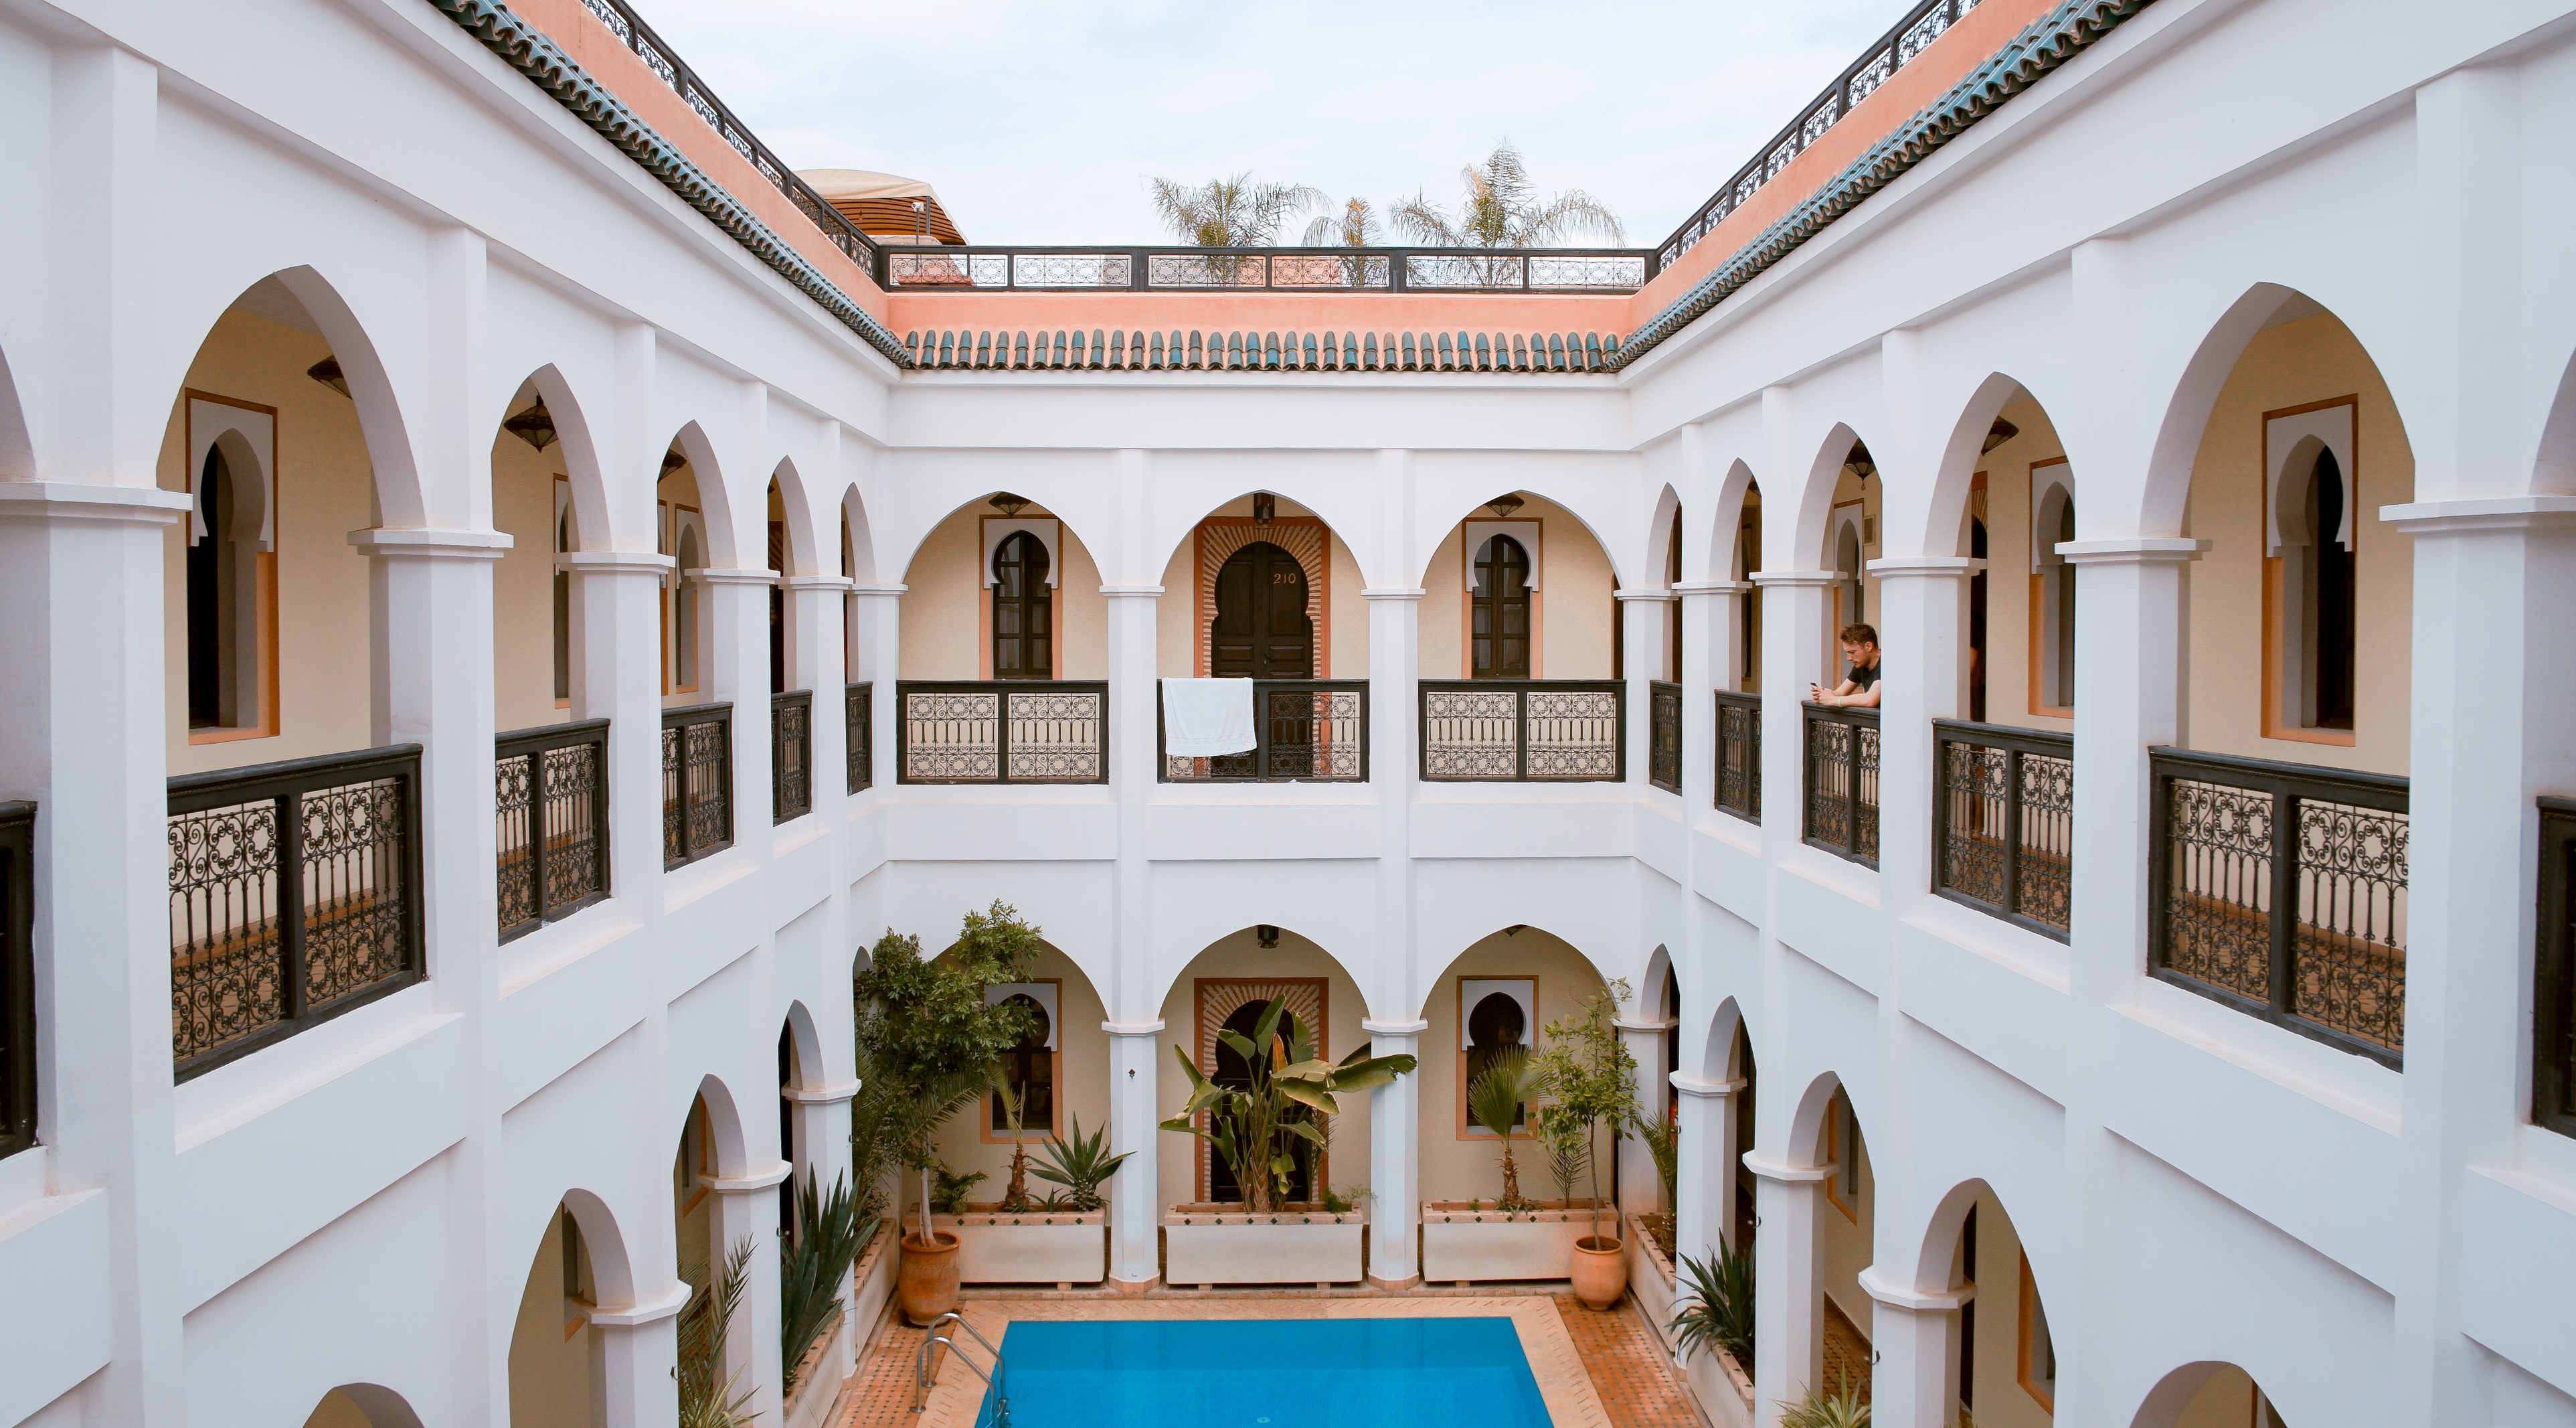 Is it easy to buy property in Morocco?